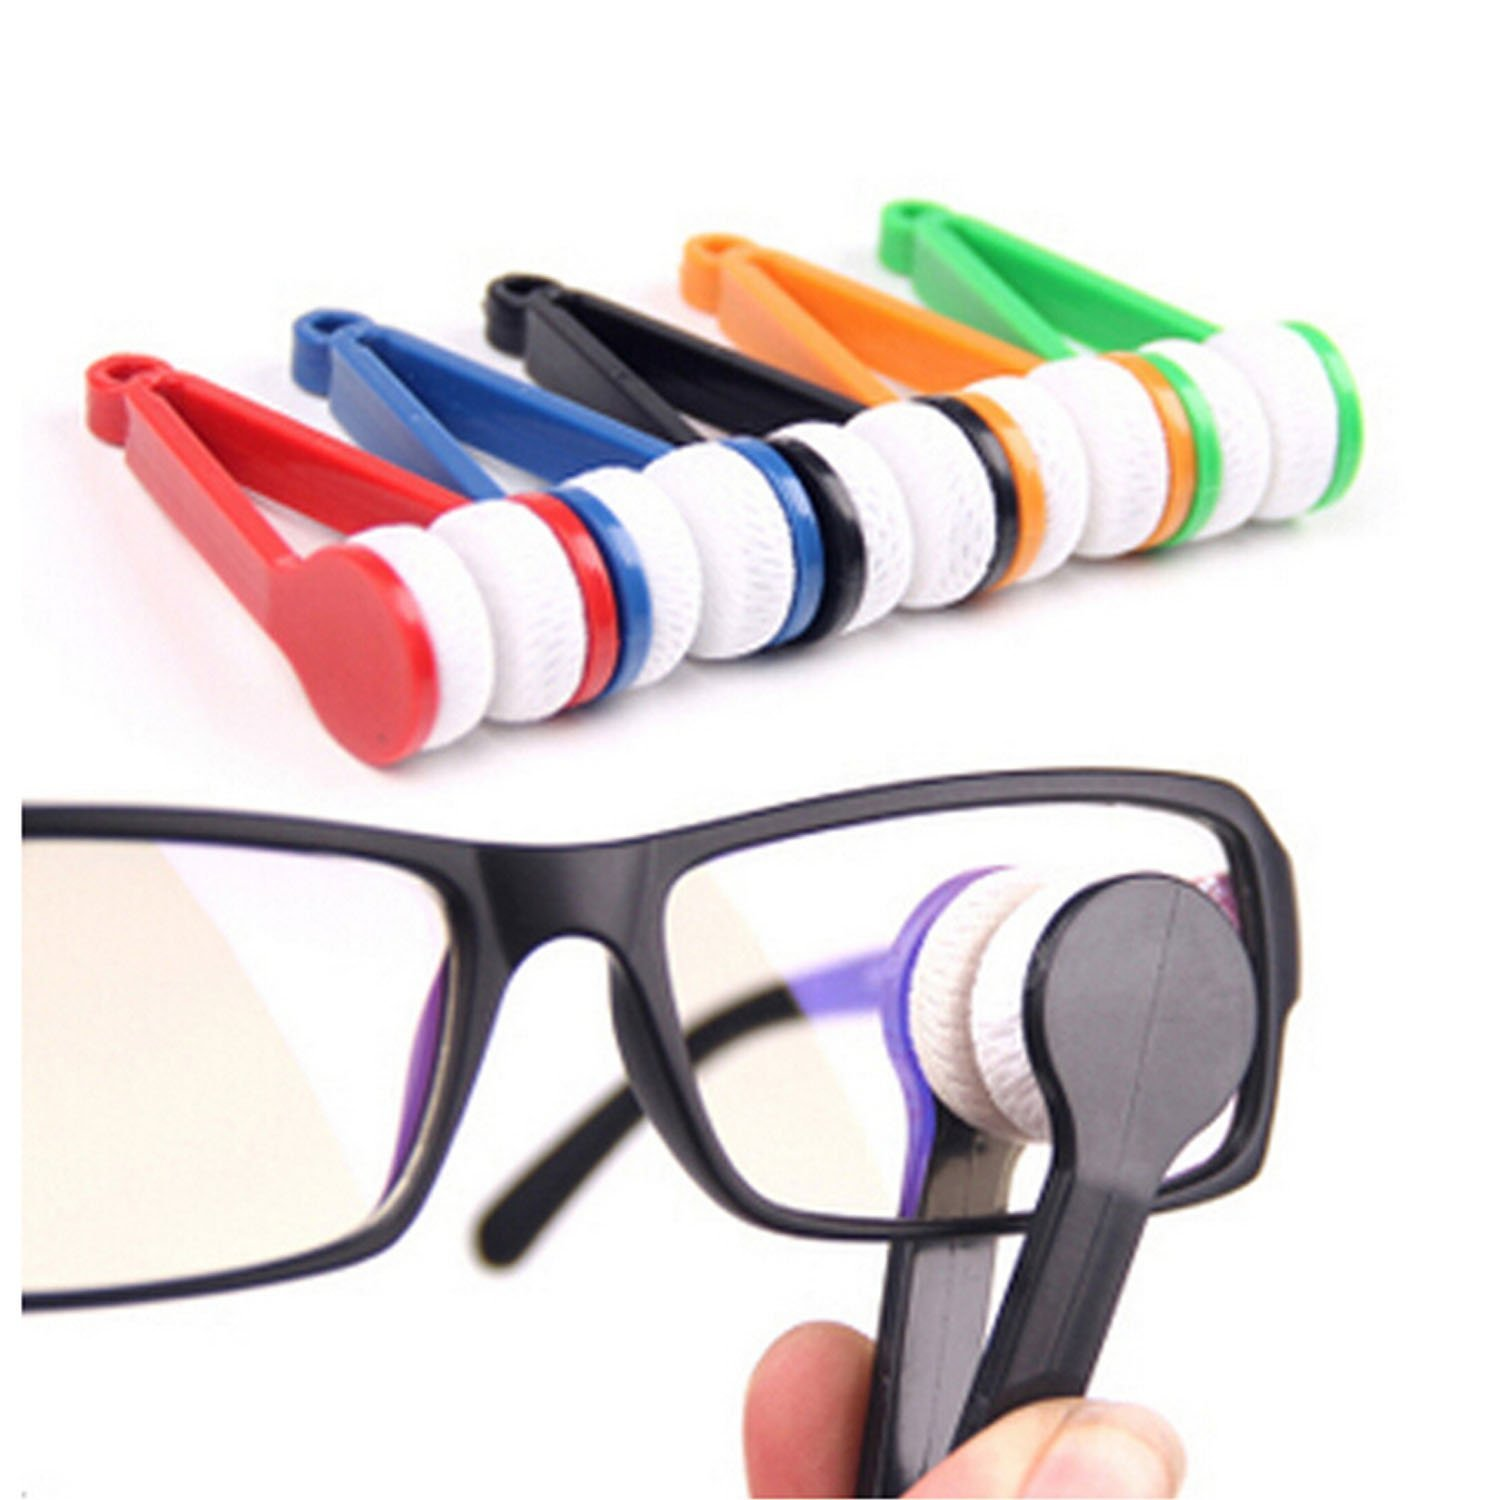 SODIAL(R) 5 Pieces Mini Sun Glasses Eyeglass Microfiber Spectacles Cleaner Soft Brush Cleaning Tool 026085